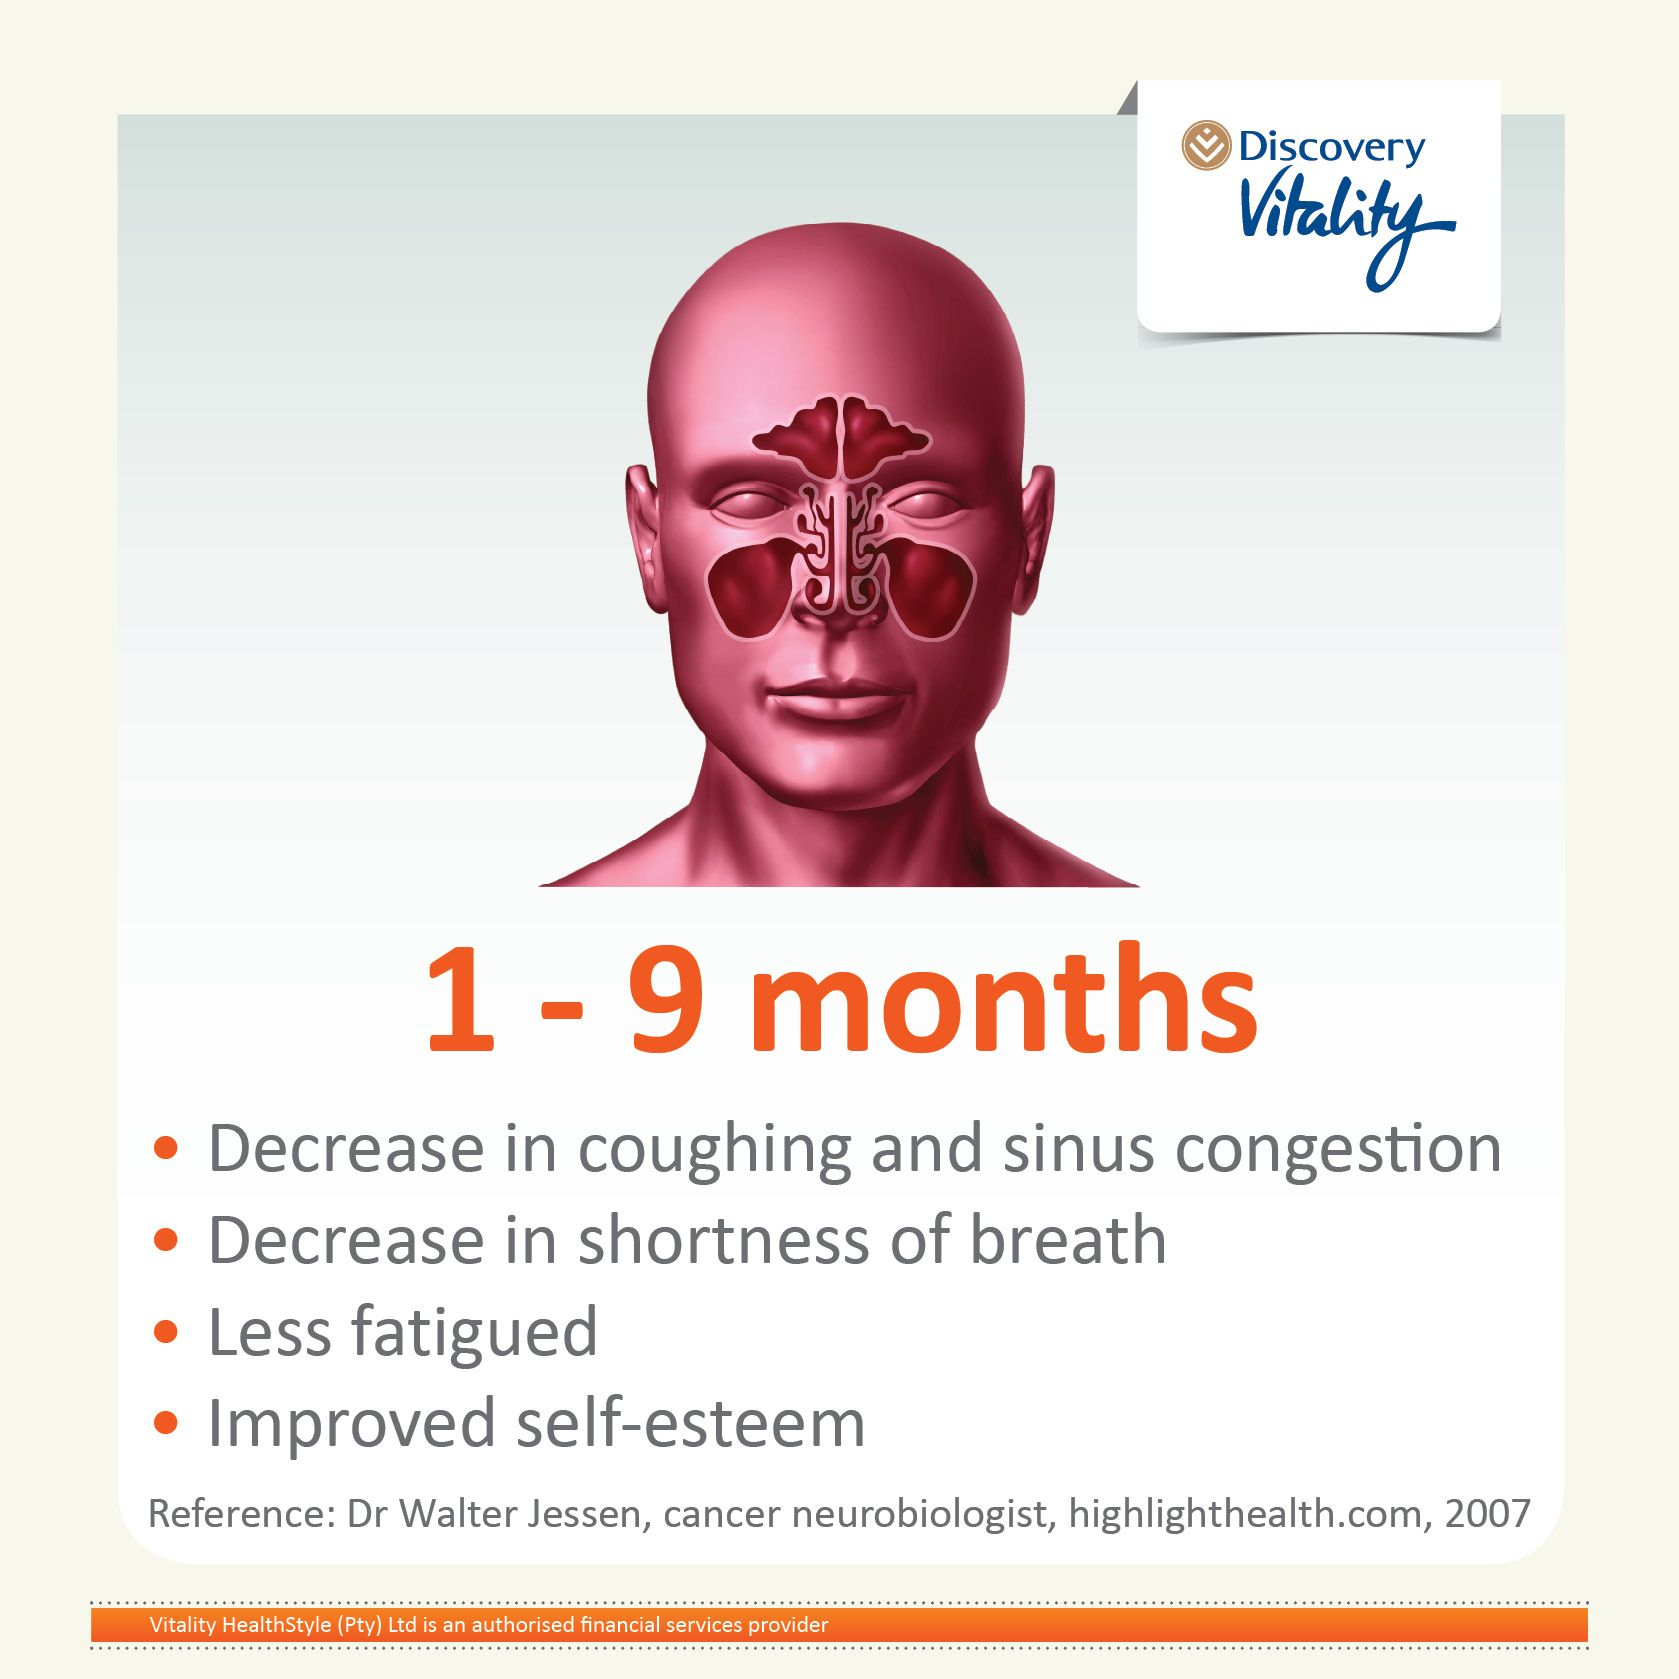 healthbenefits, 1 - 9 months after quitting smoking | Keep calm ...